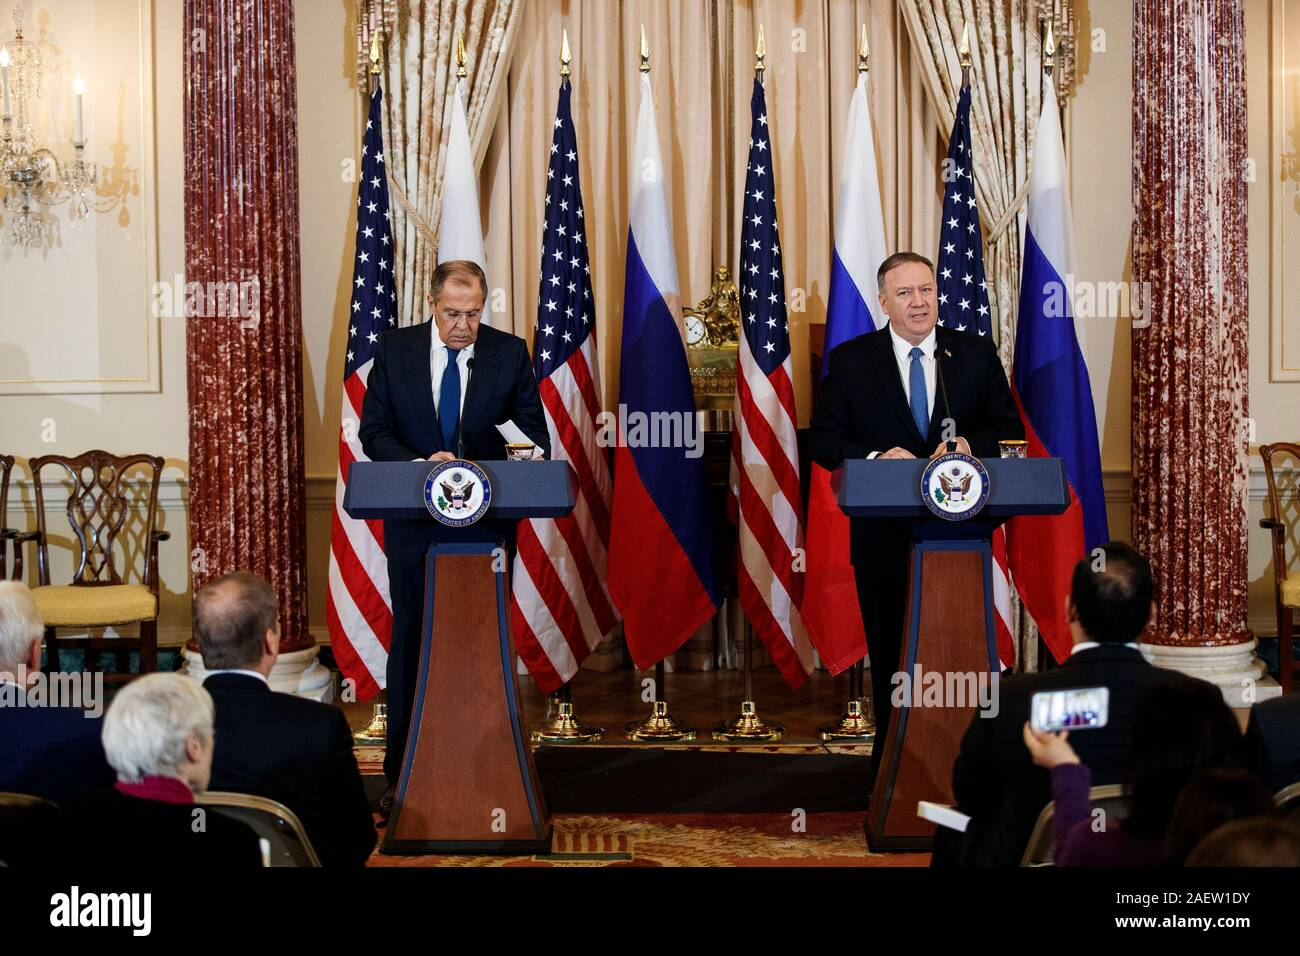 Washington, DC, USA. 10th Dec, 2019. U.S. Secretary of State Mike Pompeo (R) and Russian Foreign Minister Sergey Lavrov hold a joint press conference in Washington, DC Dec. 10, 2019. Credit: Ting Shen/Xinhua/Alamy Live News Stock Photo